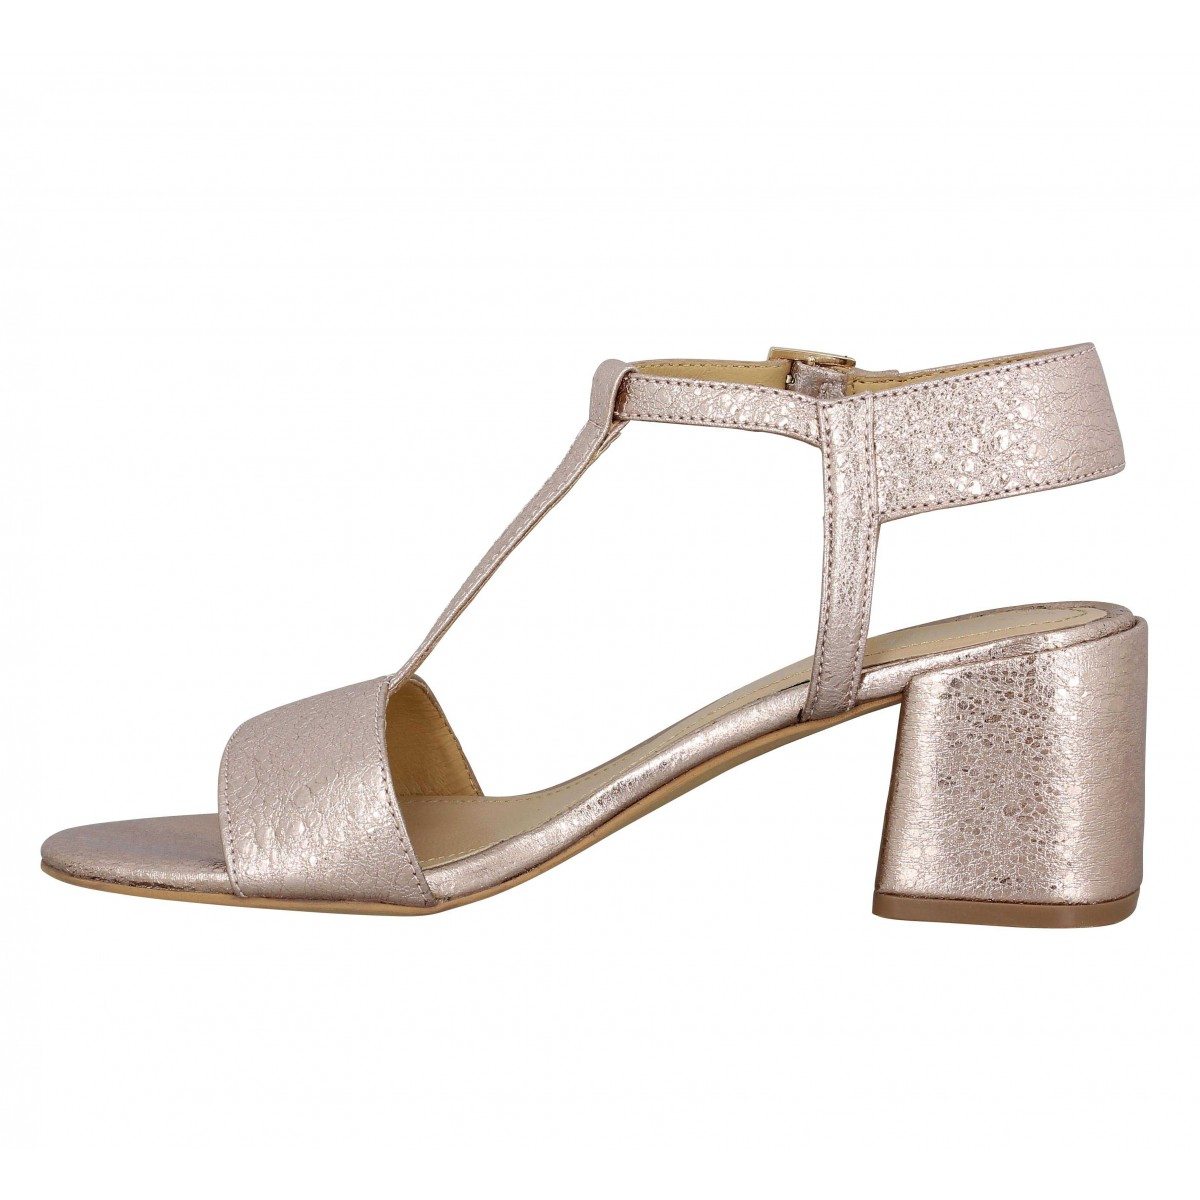 3e0cc893888602 chaussures femme Fanny cuir femme Adele dezotti 110 or HURP0S